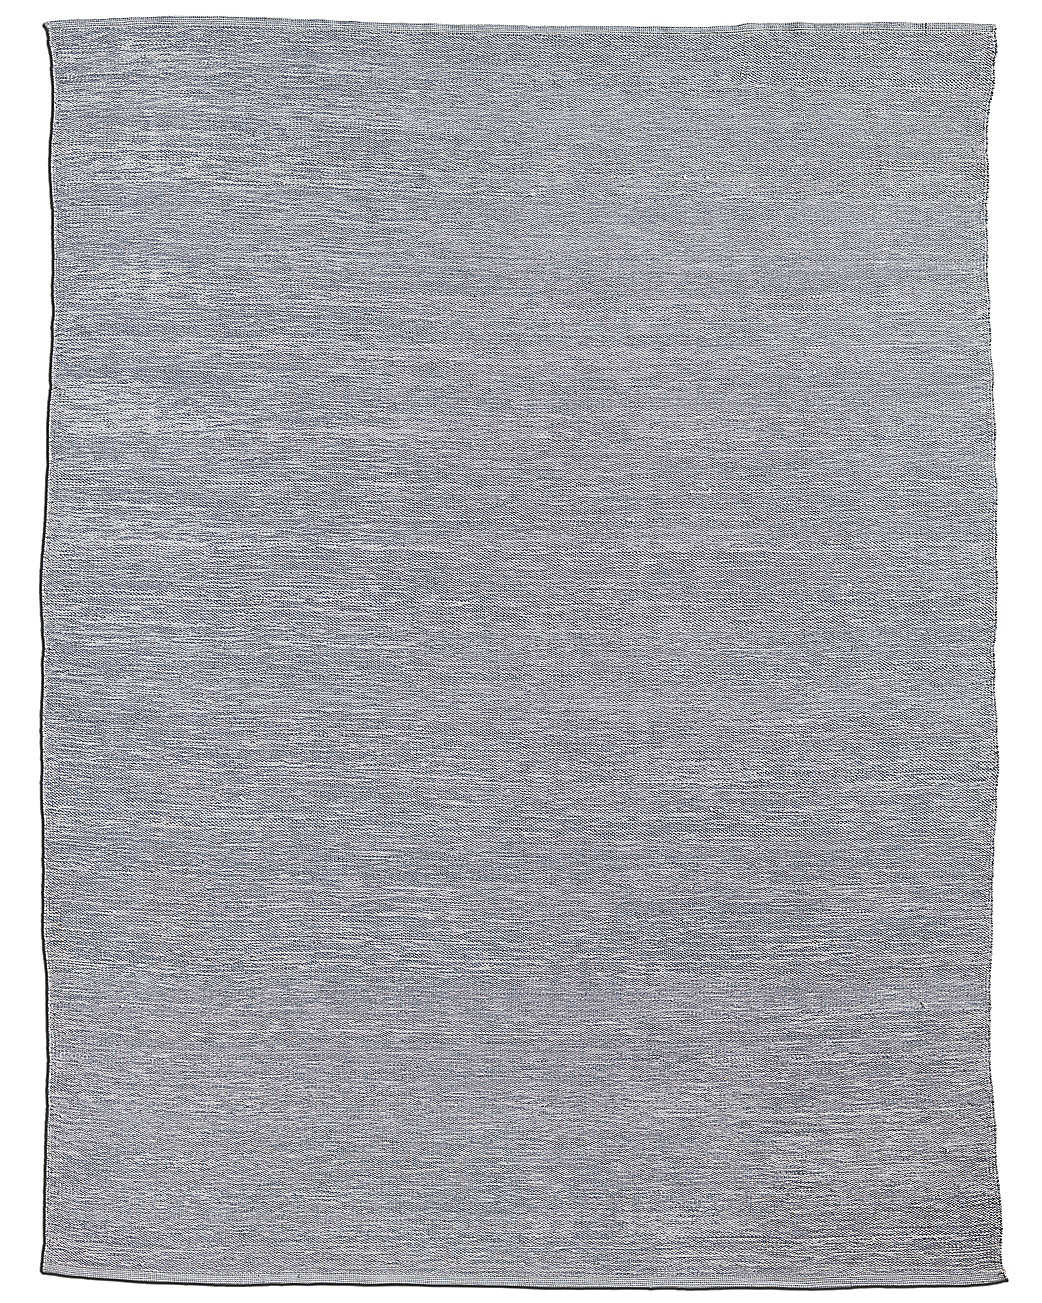 All-Weather Recycled Heathered Solid Outdoor Rug - Fog